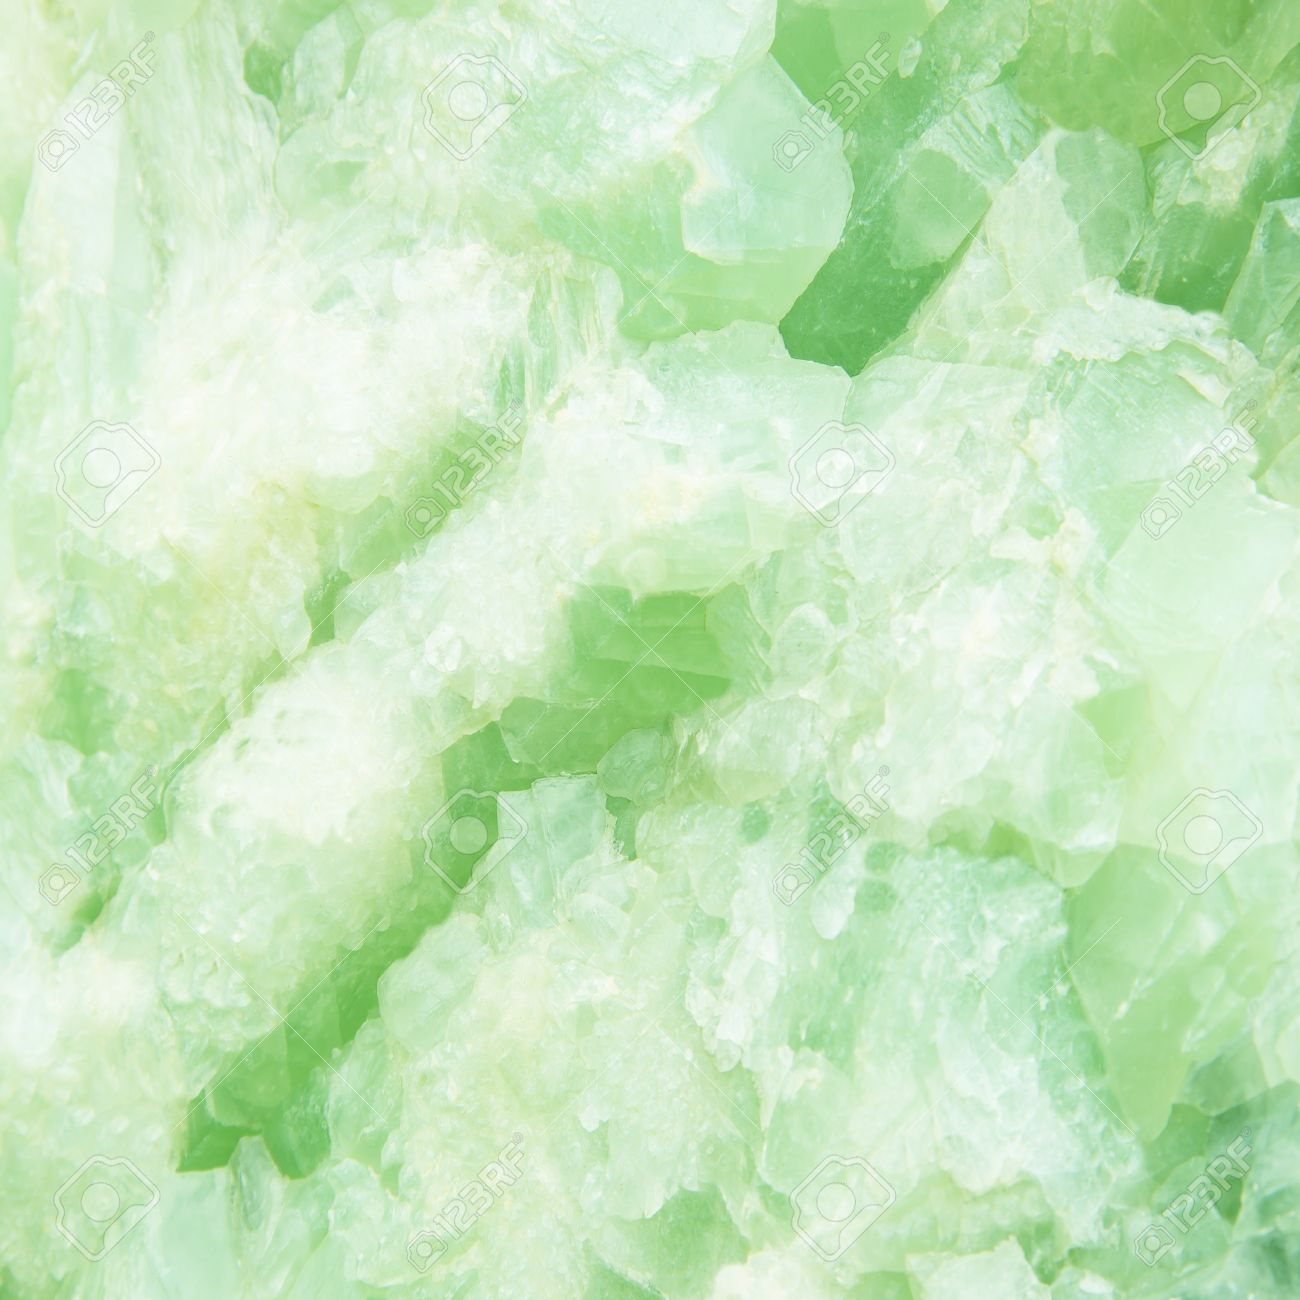 Jade Color Stock Photos & Pictures. Royalty Free Jade Color Images ...